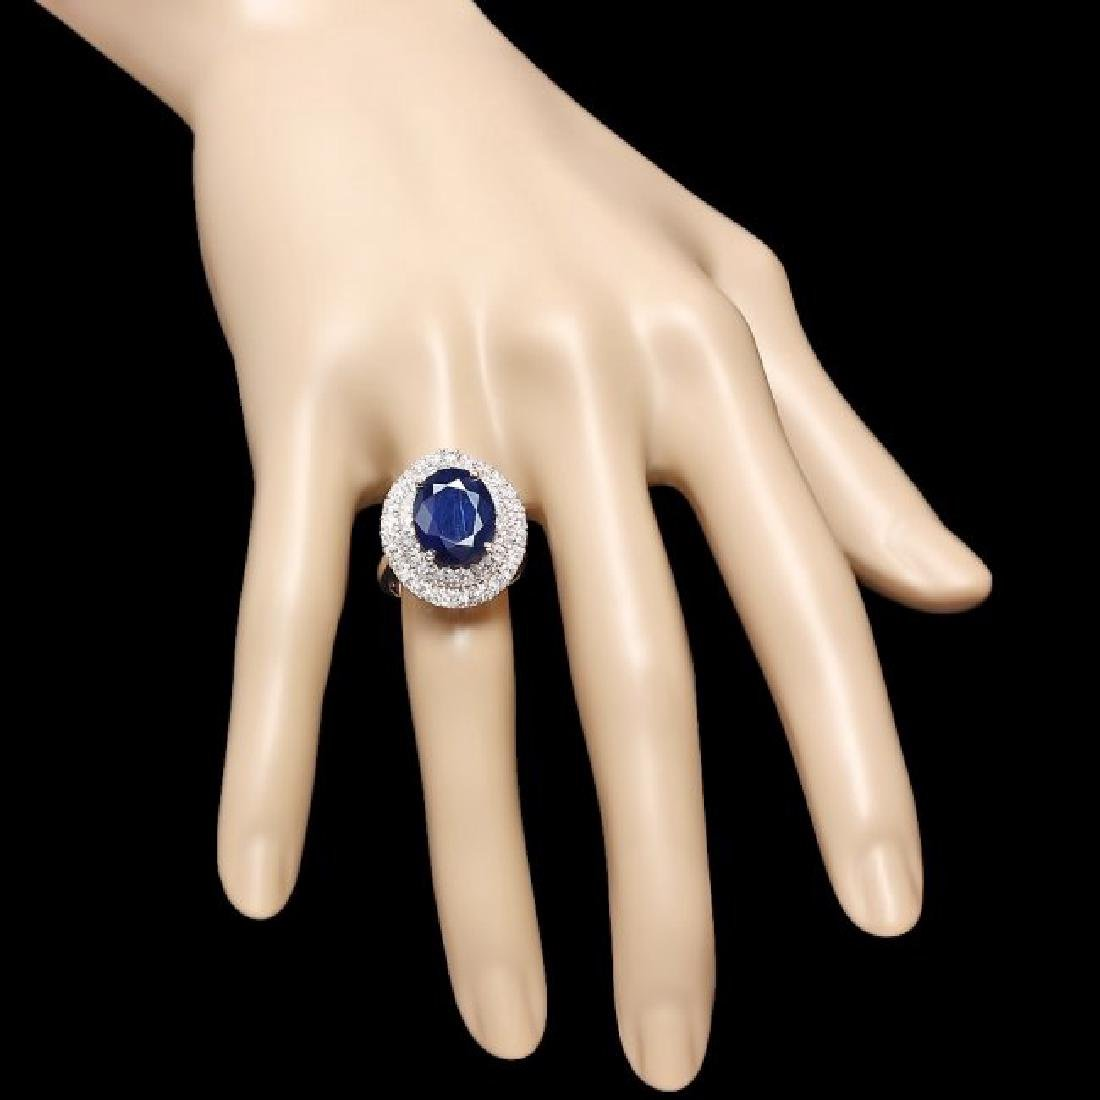 14k Gold 8.00ct Sapphire 1.65ct Diamond Ring - 4